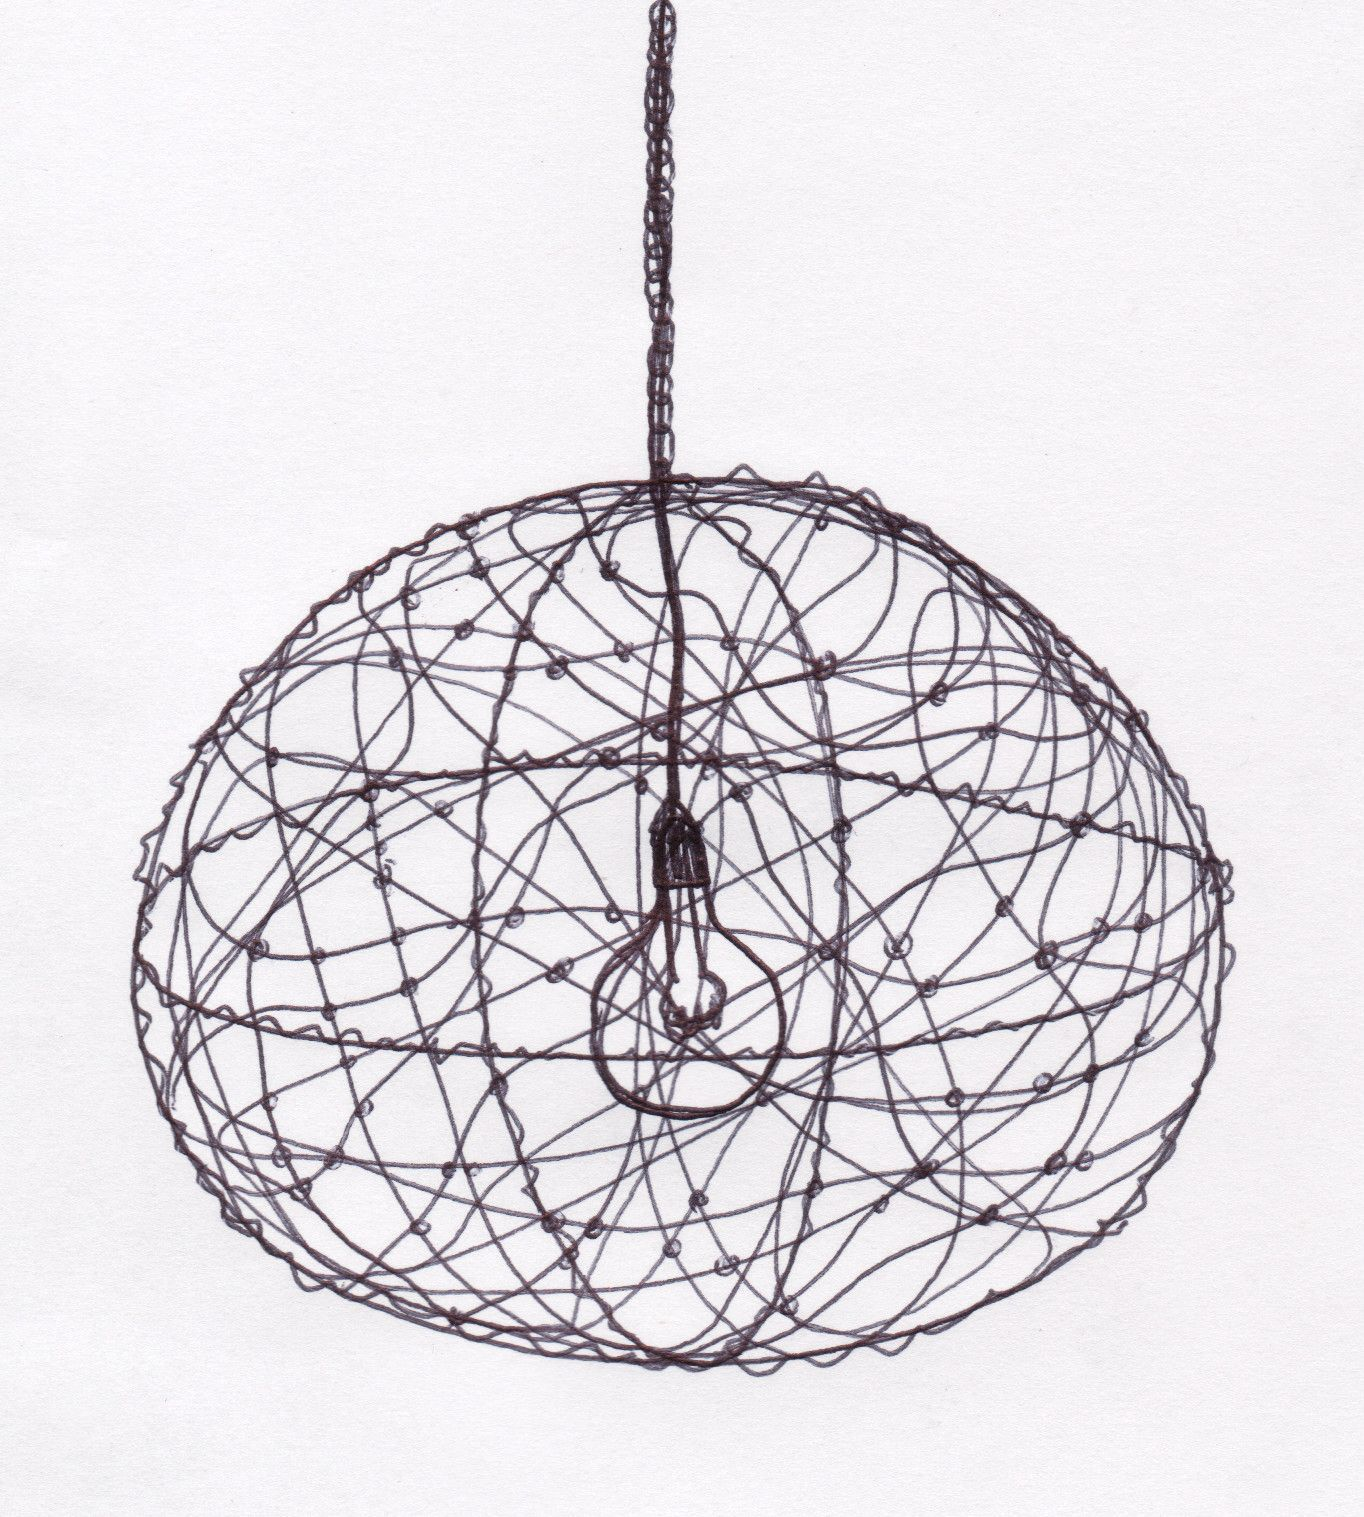 Diy for this beautiful wire lampshade bails pinterest wire diy for this beautiful wire lampshade greentooth Gallery